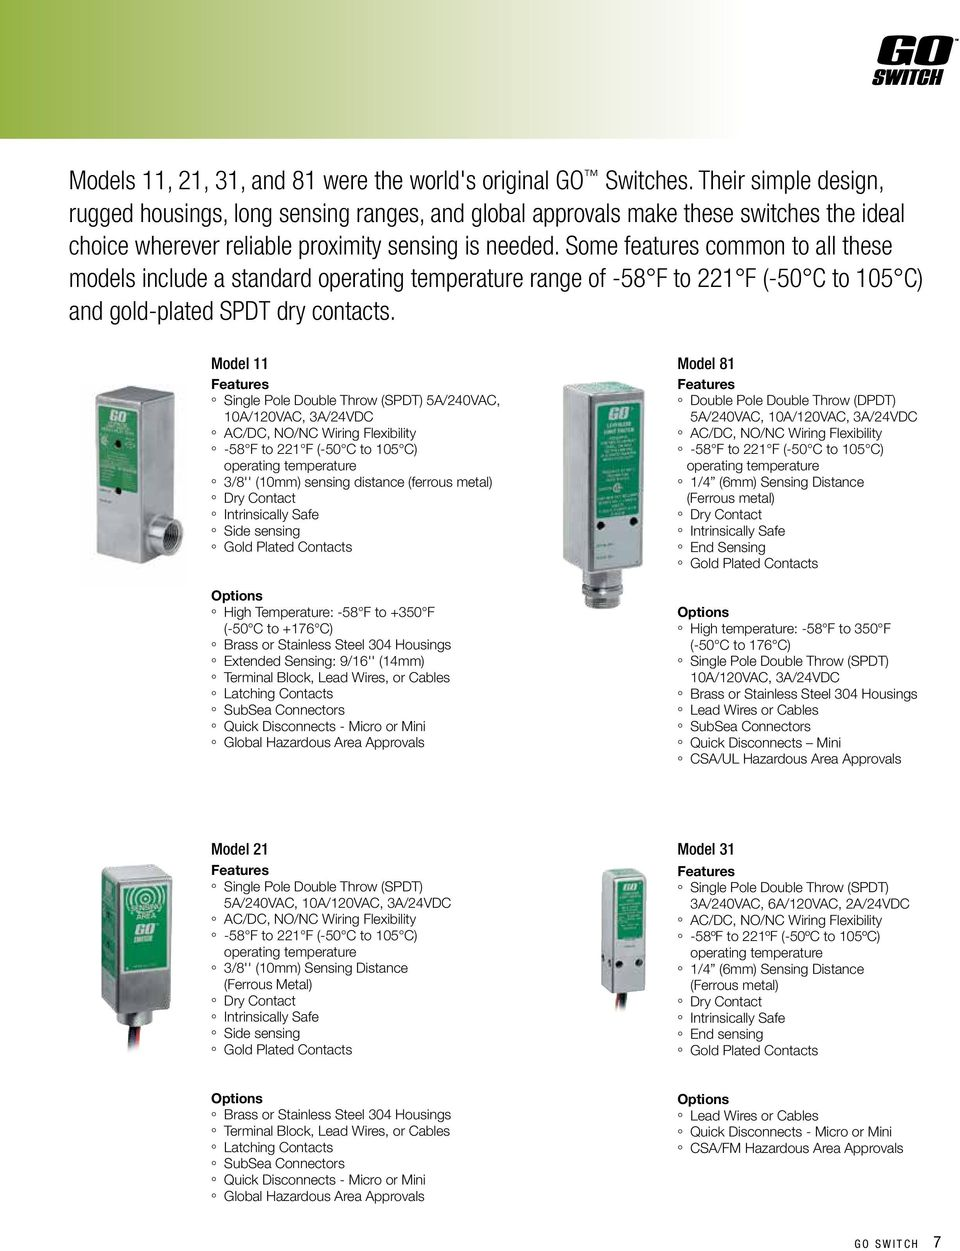 Go Gets It The All In One Proximity Sensor And Limit Switch Pdf Together With Circuit Diagram Some Features Common To These Models Include A Standard Range Of 58 F